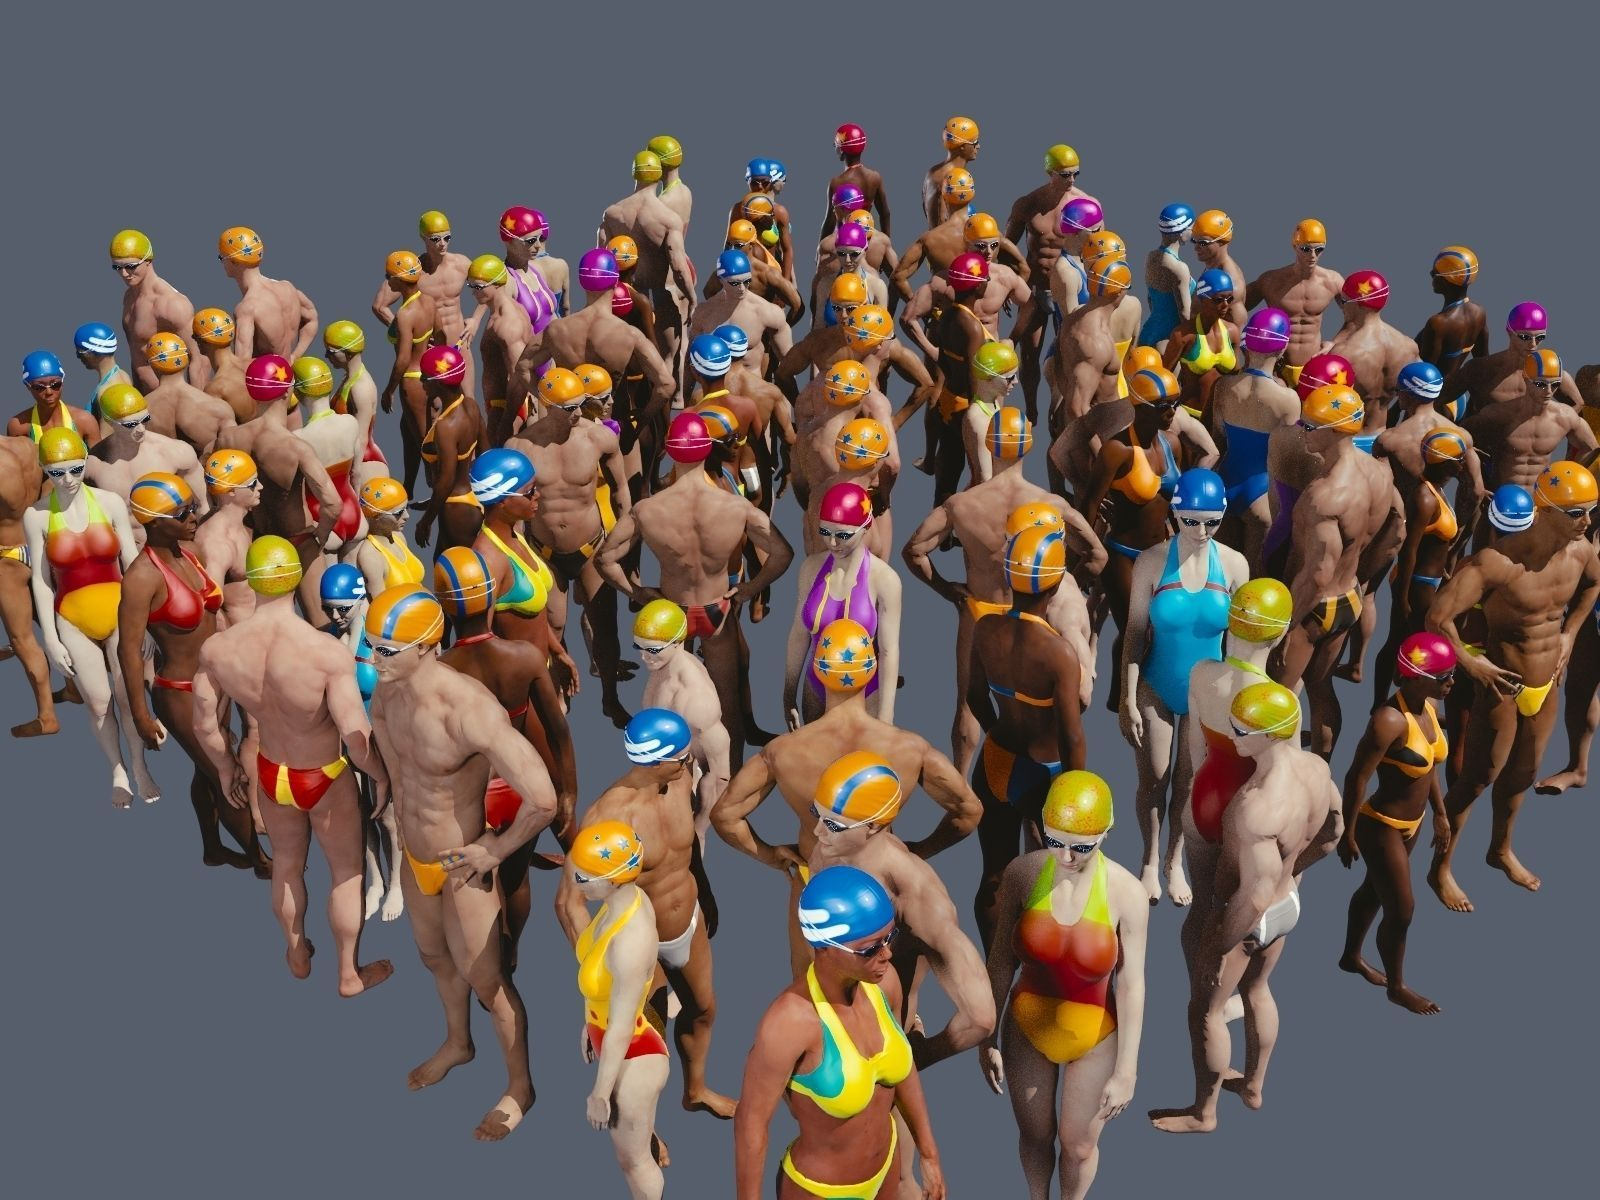 free texture pack for swimming pool people free 3d model